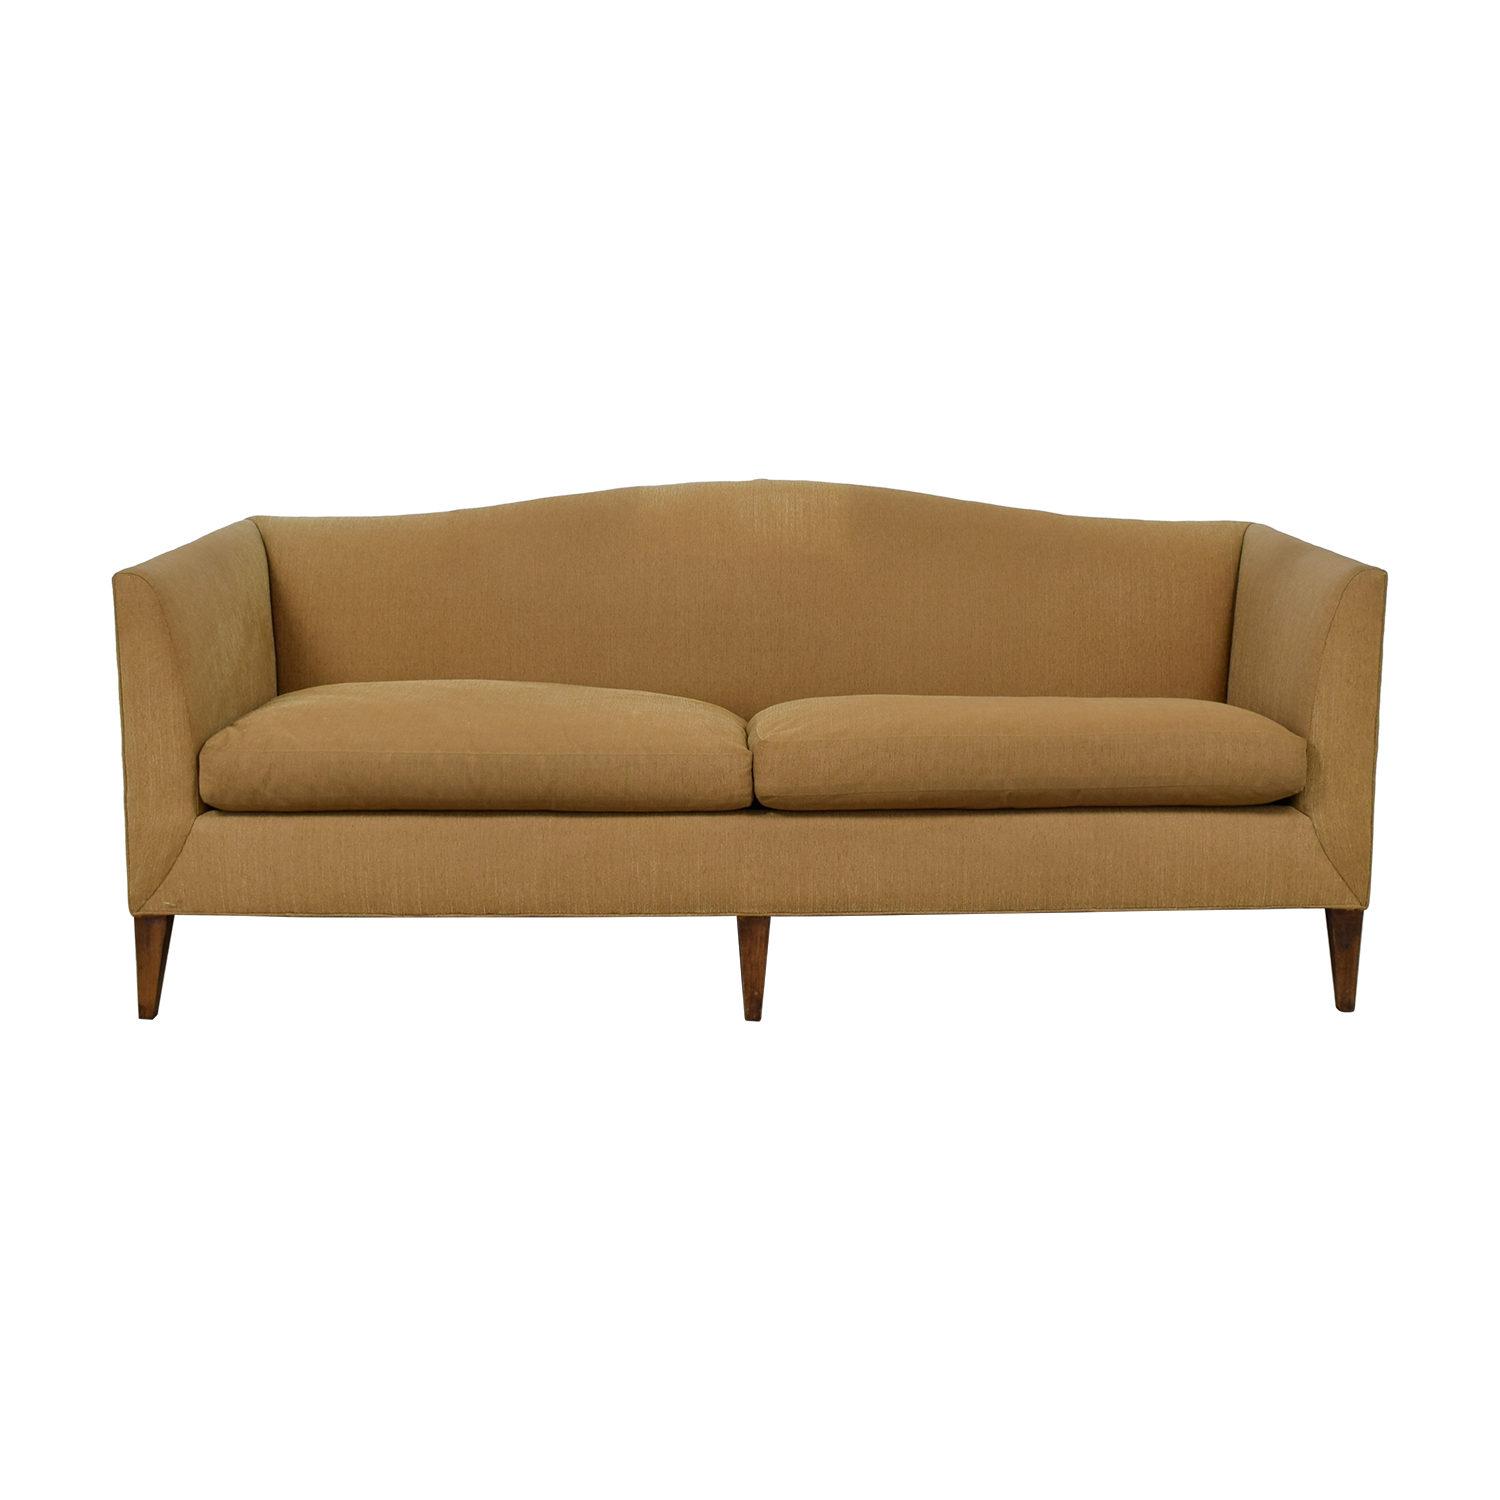 sofa furnitureland south aniline leather why choose one baker sofas furniture thesofa